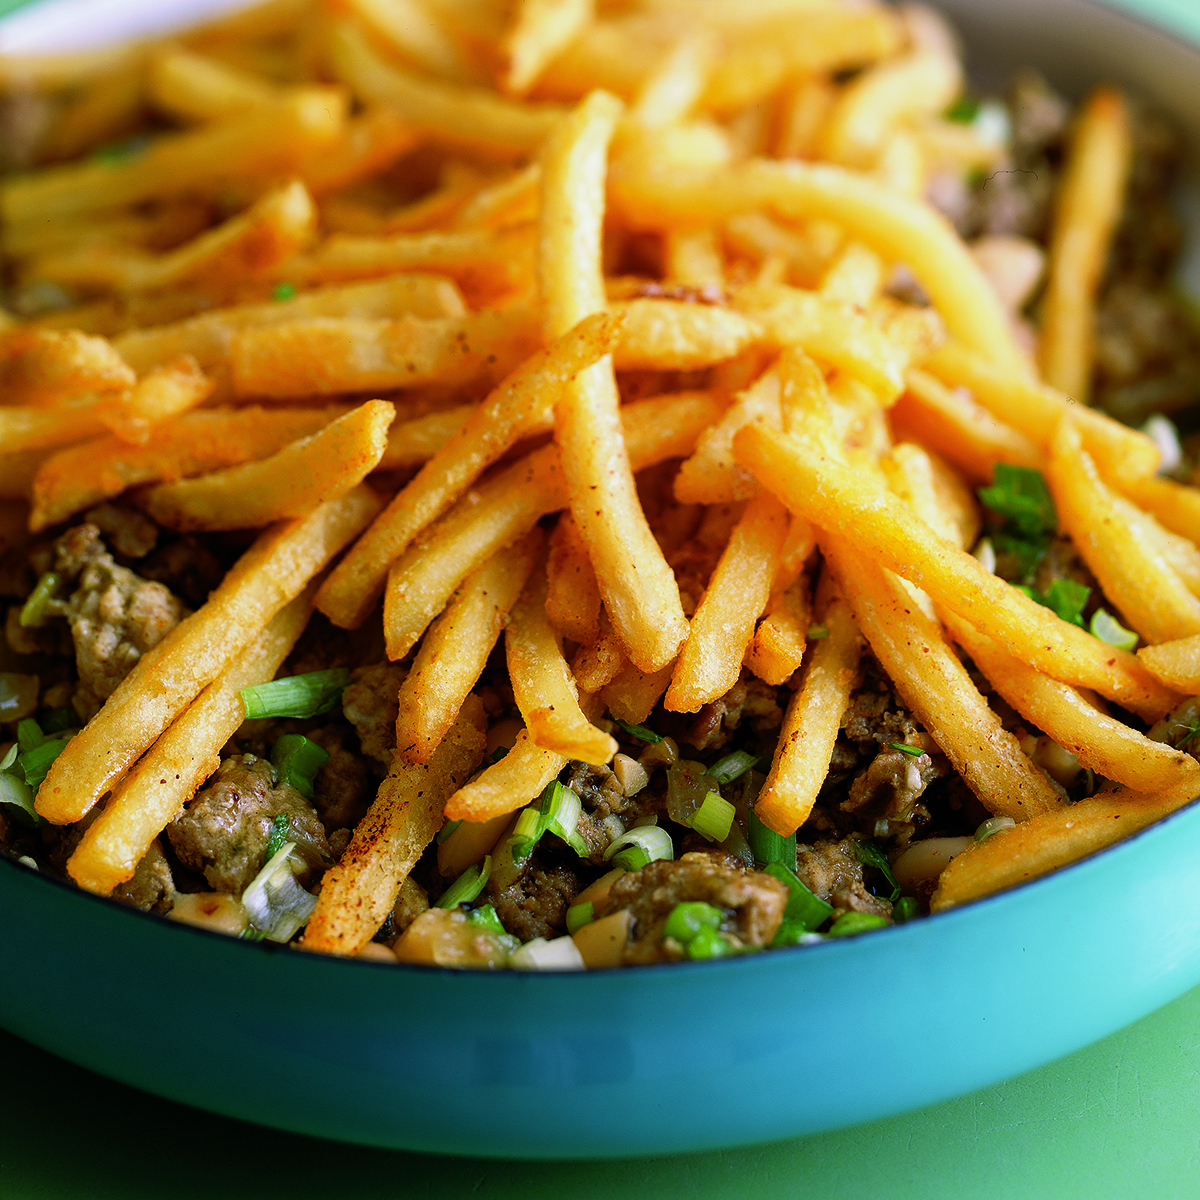 Green Spring Chili and French Fry Pie